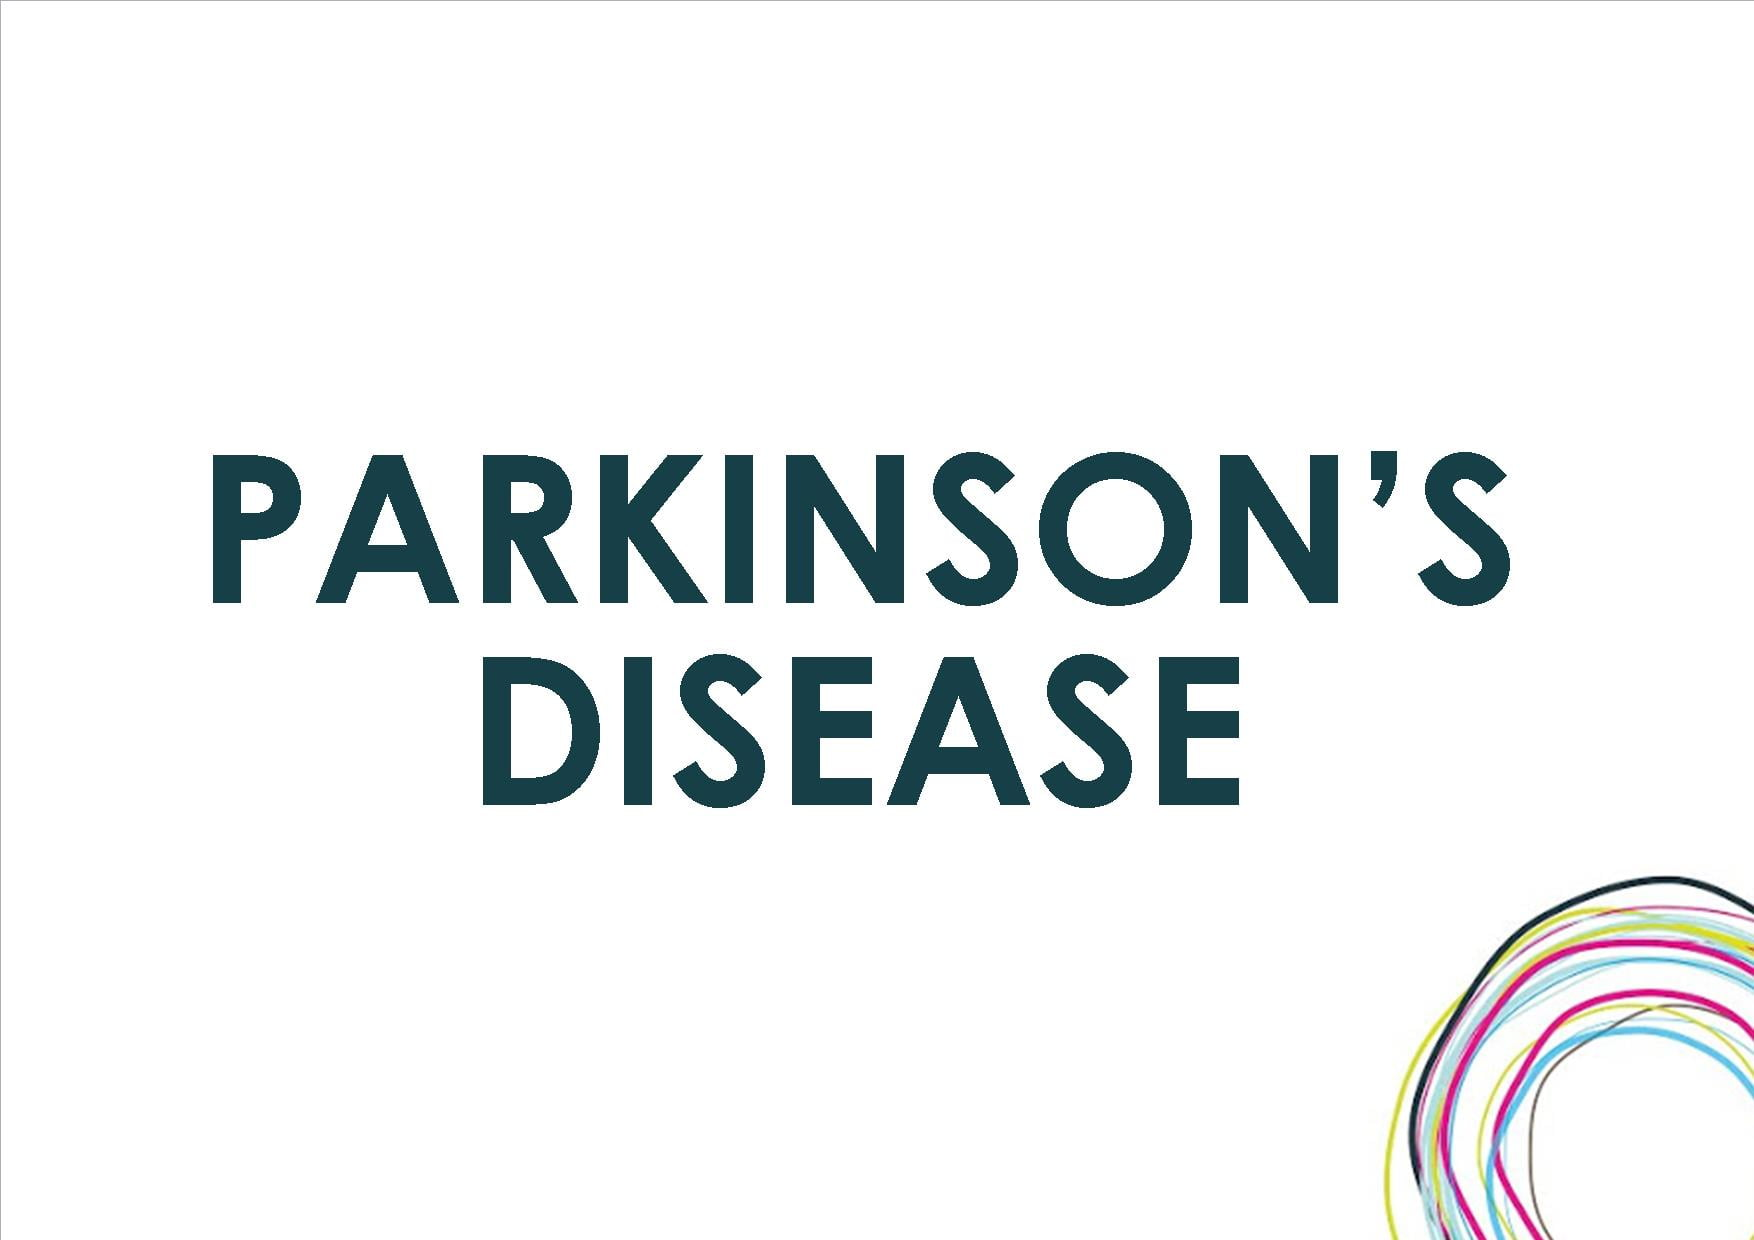 parkinson's disease Consumer health digest gives a comprehensive overview of parkinson's disease types, symptoms, causes, risk factors, diagnosis and how to treat it.